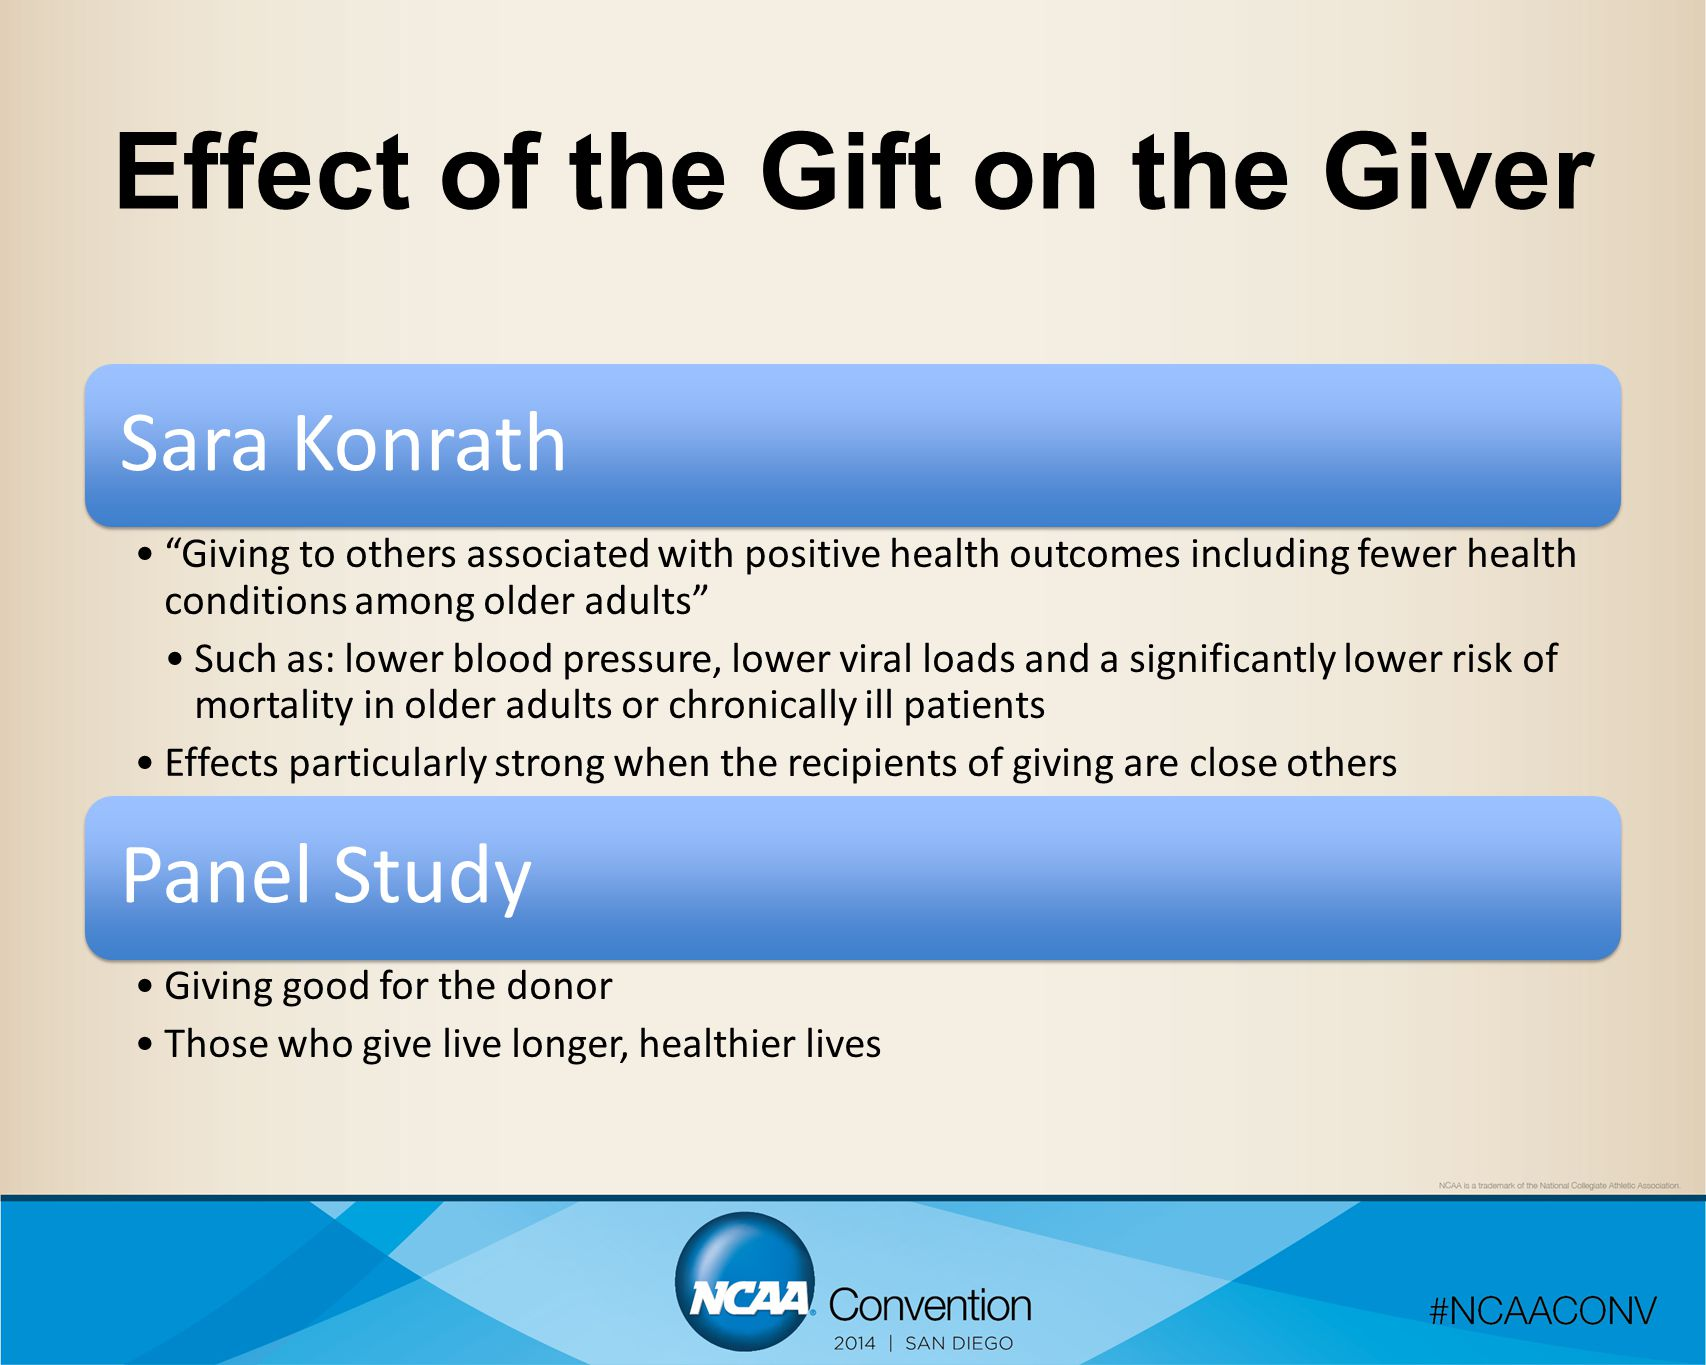 Effect of the Gift on the Giver